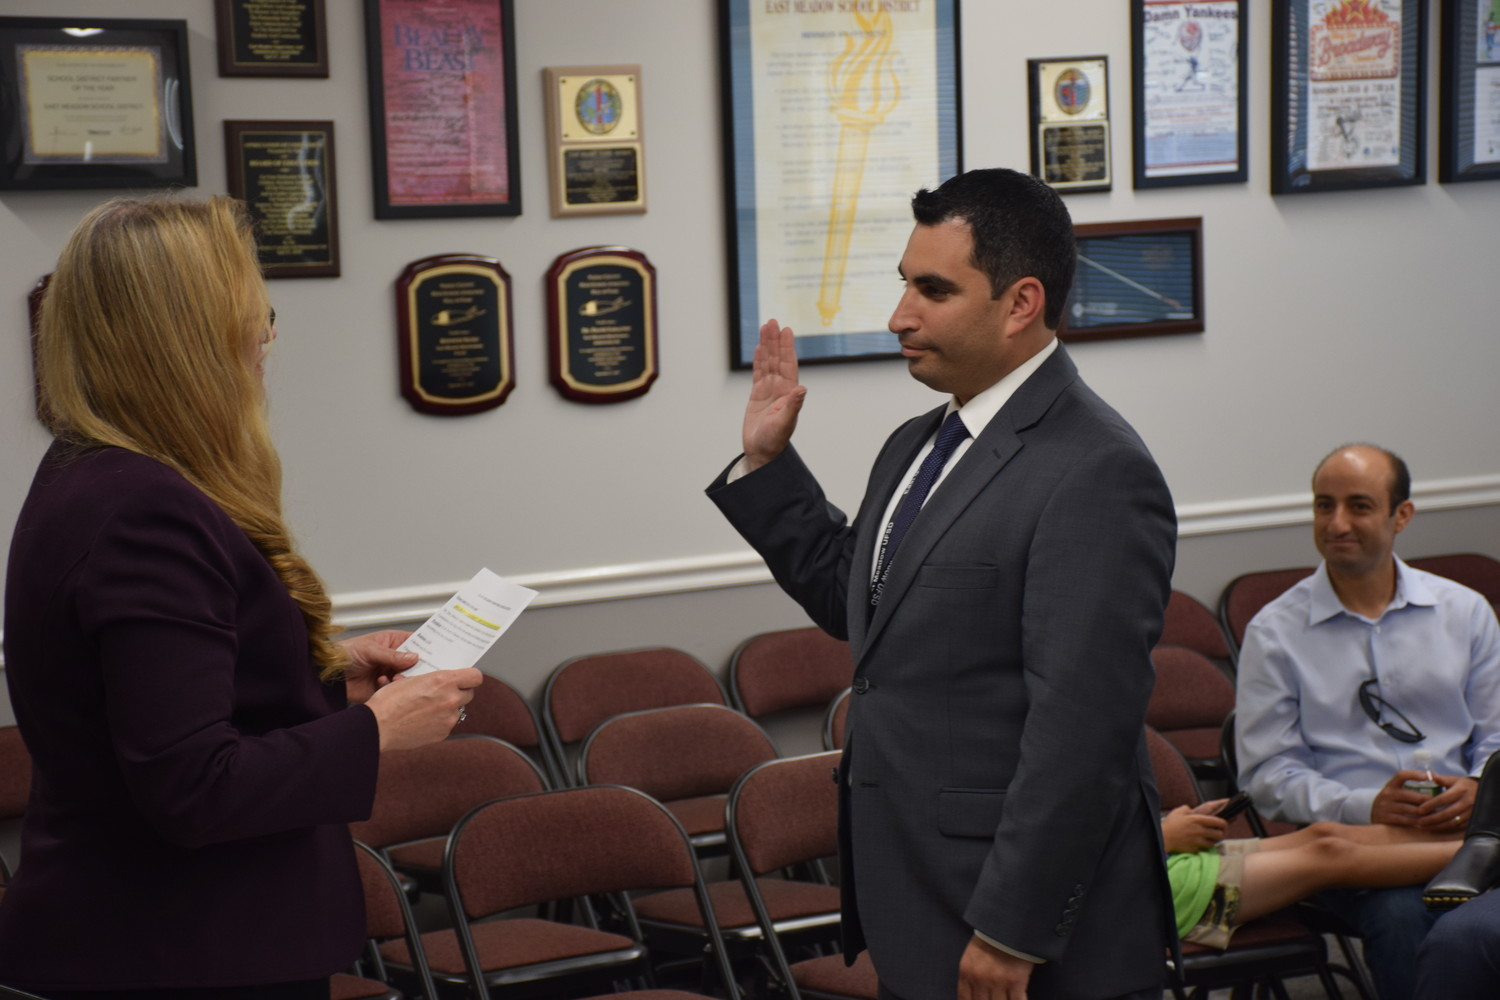 Matthew Melnick, right, was sworn in as newly elected president of the East Meadow Board of Education with Scott Eckers being voted vice president.